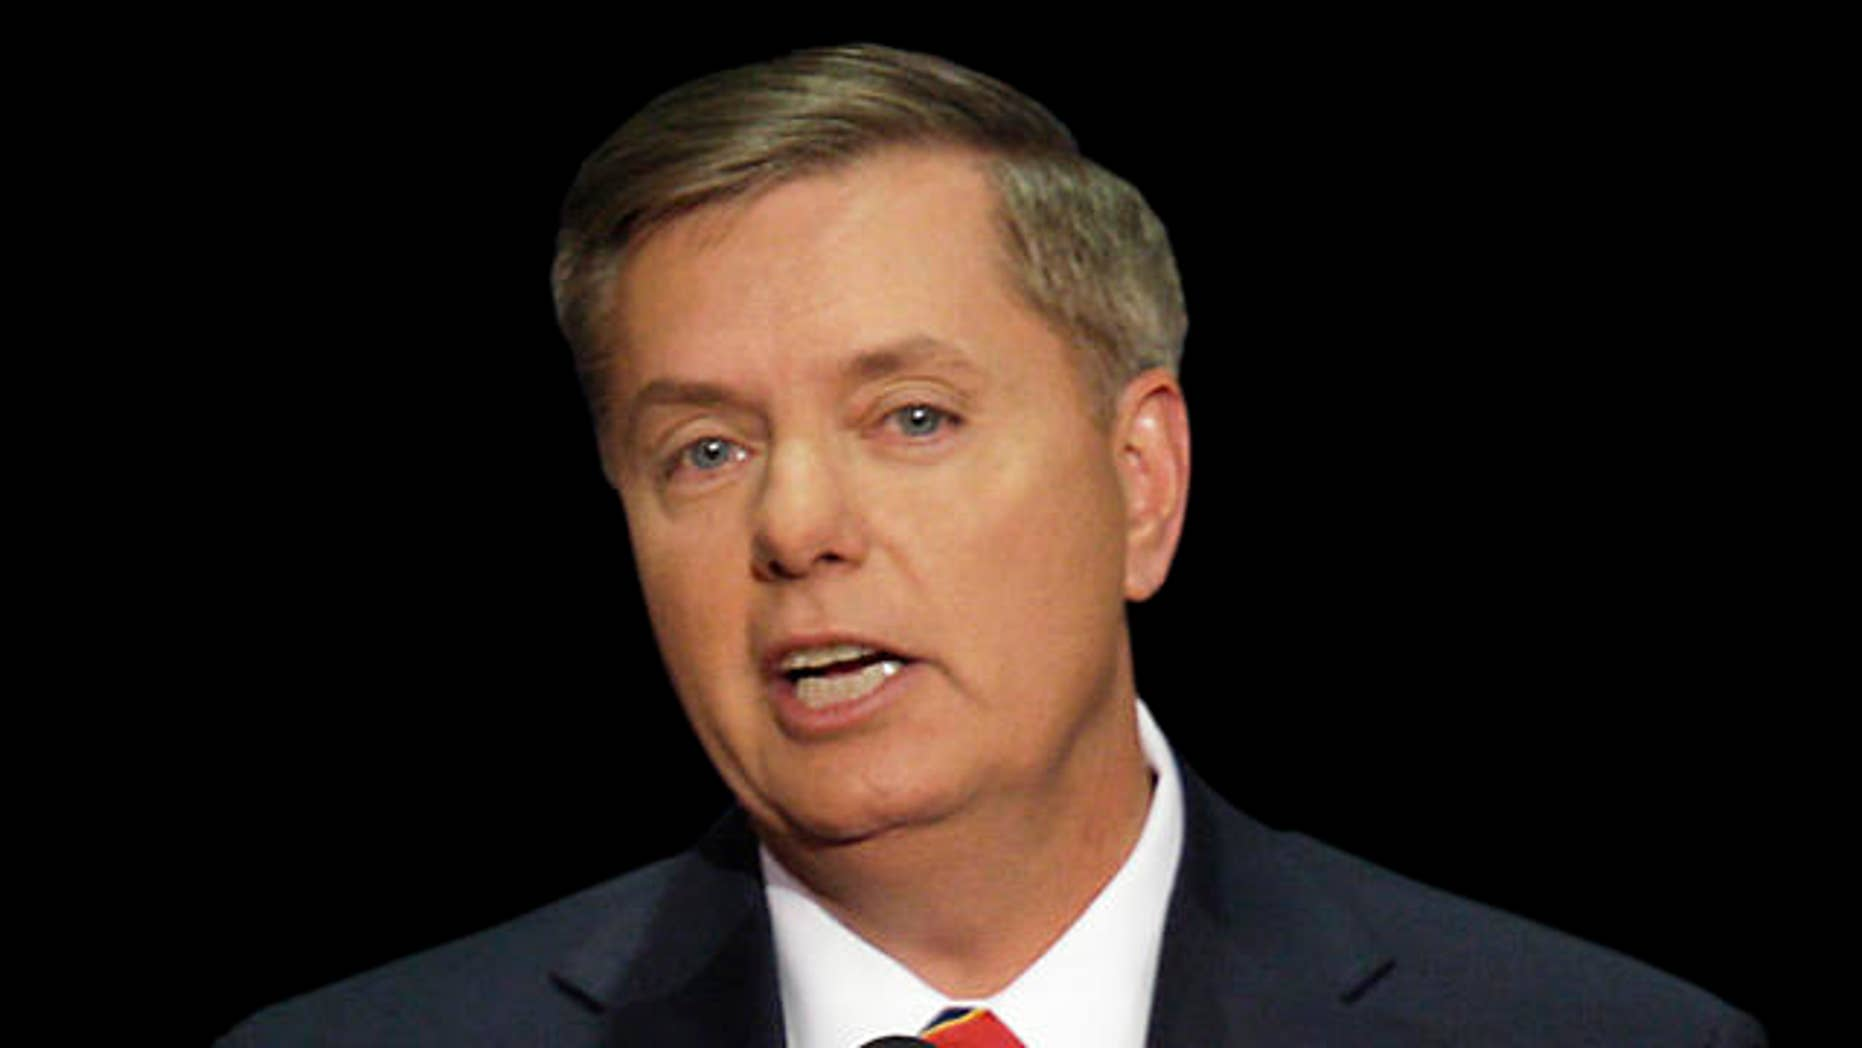 Sen. Lindsey Graham, R-S.C., speaks at the Republican National Convention in St. Paul, Minn., Thursday, Sept. 4, 2008.